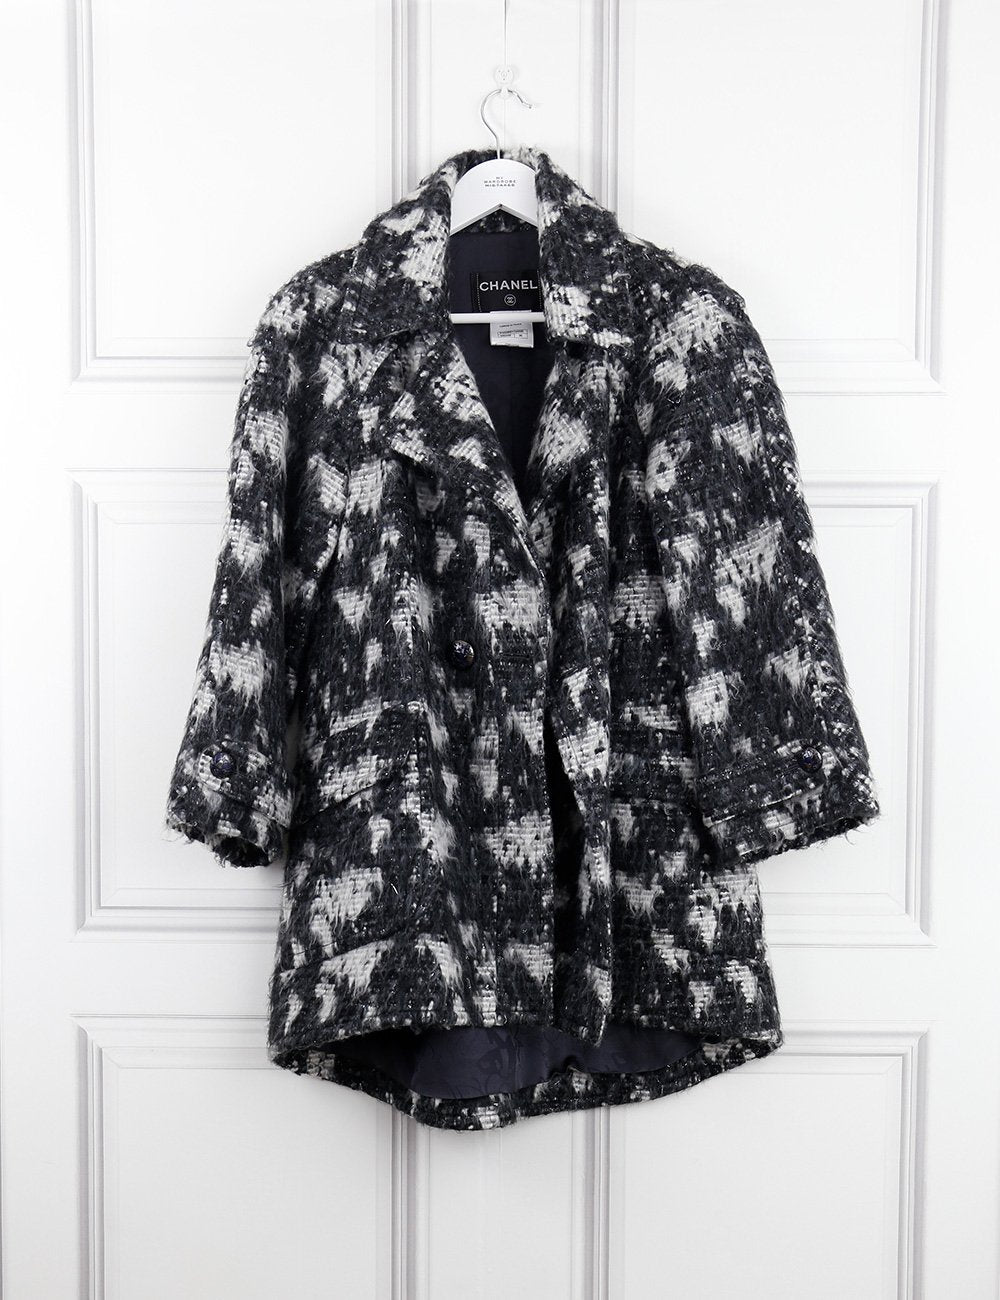 CHANEL multicolour Coat with Planet Earth buttons 8Uk- My Wardrobe Mistakes